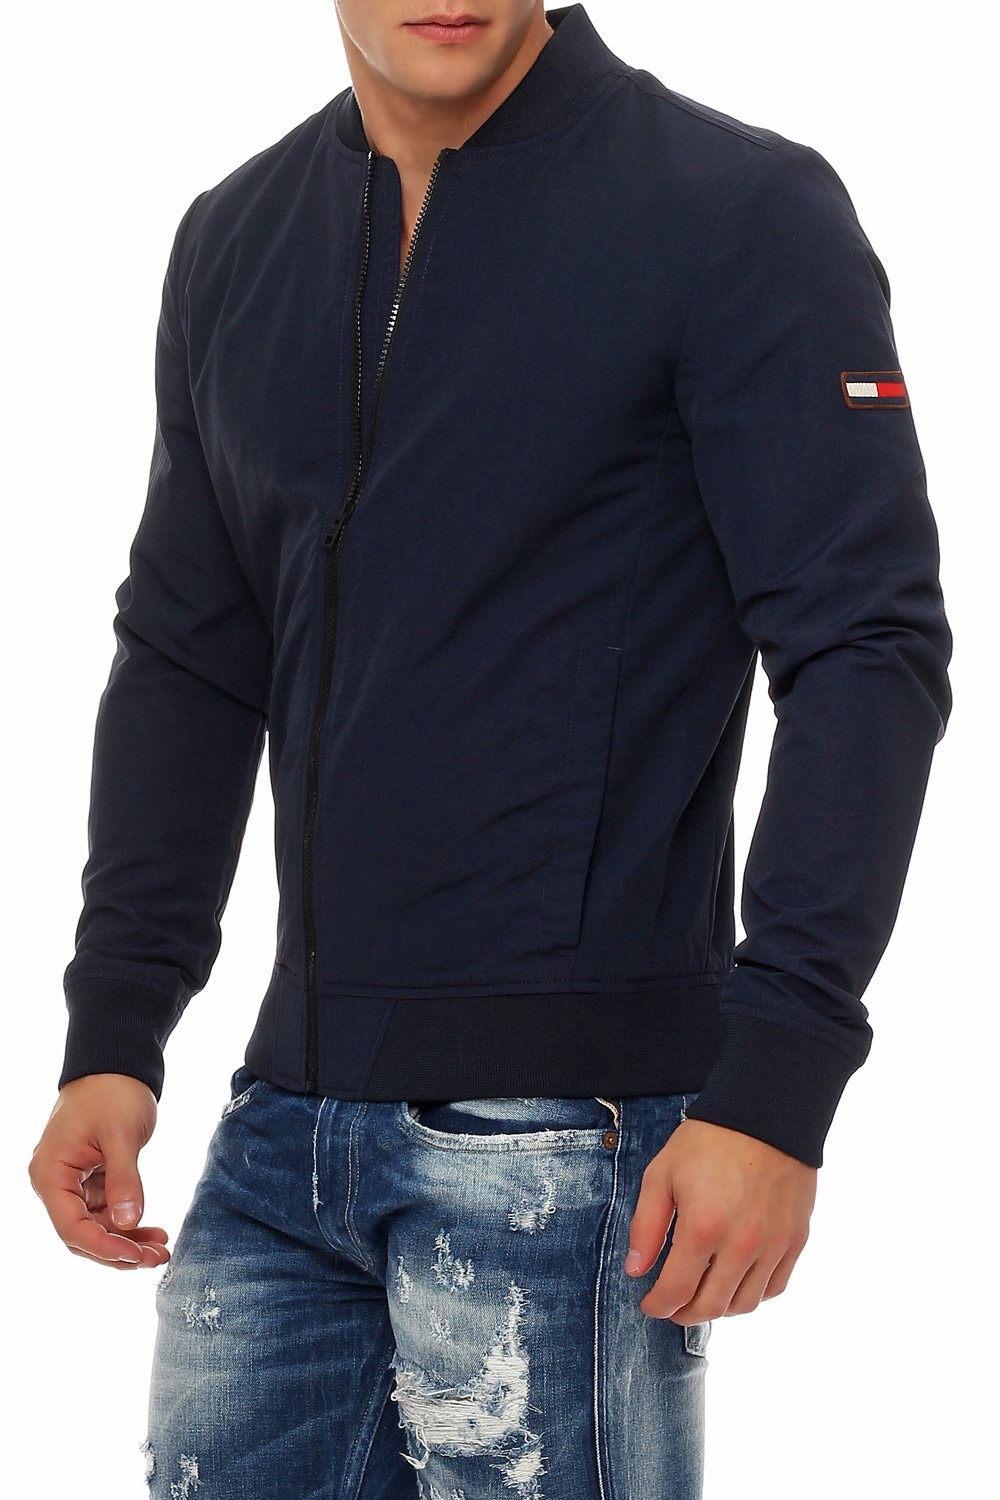 tommy hilfiger herren jacke ubergangsjacke navy modische. Black Bedroom Furniture Sets. Home Design Ideas